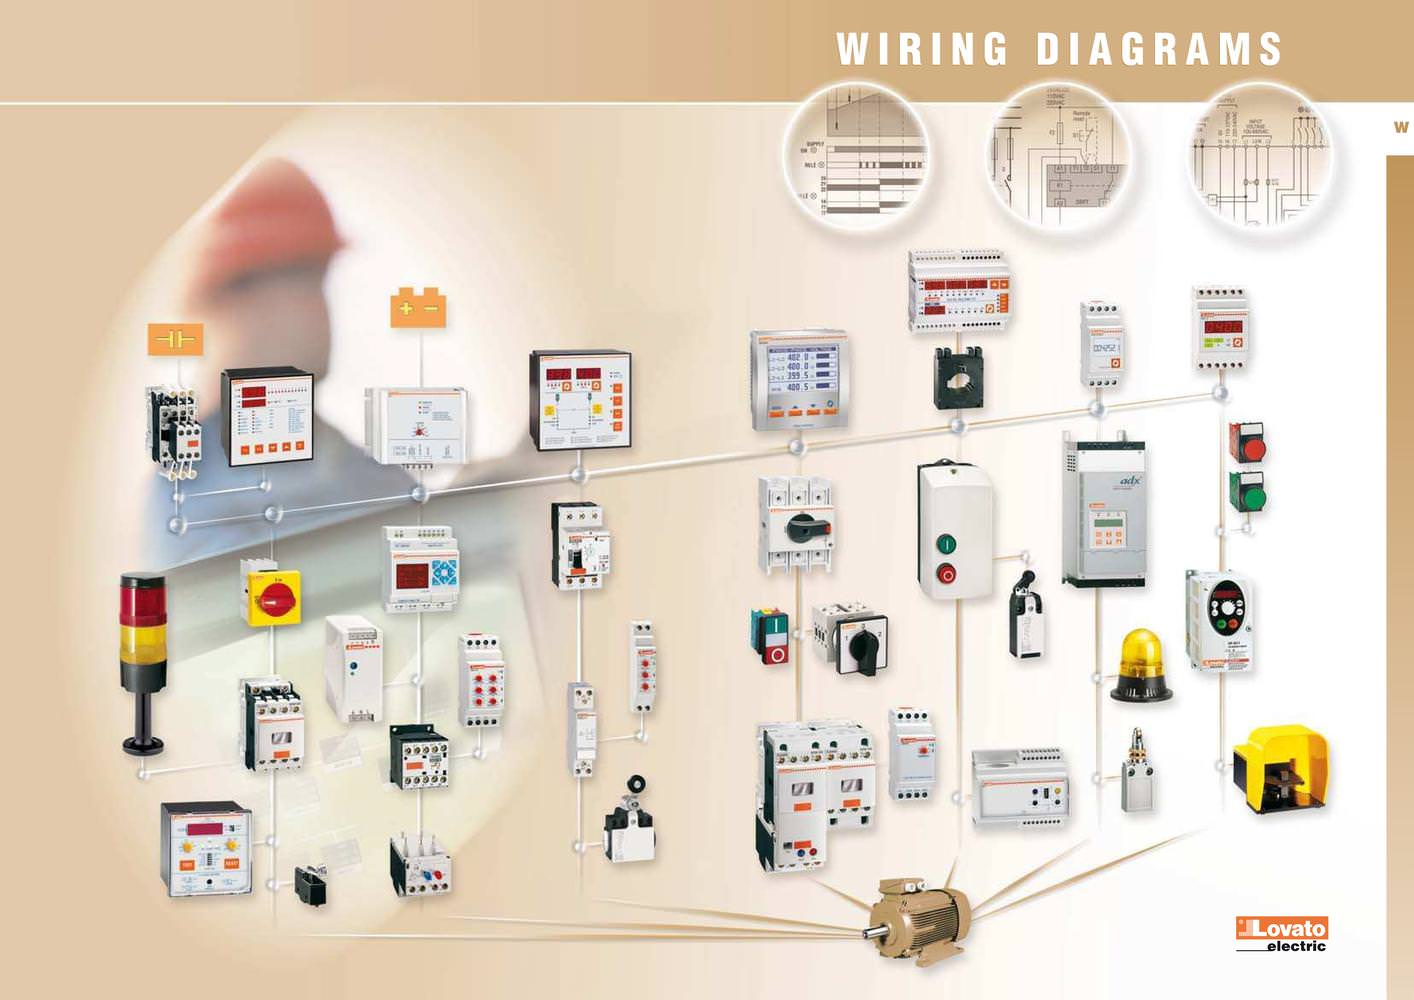 Wiring Diagrams Lovato Electric Pdf Catalogue Technical 3 Wire Phase To 220v Diagram Delta 1 39 Pages